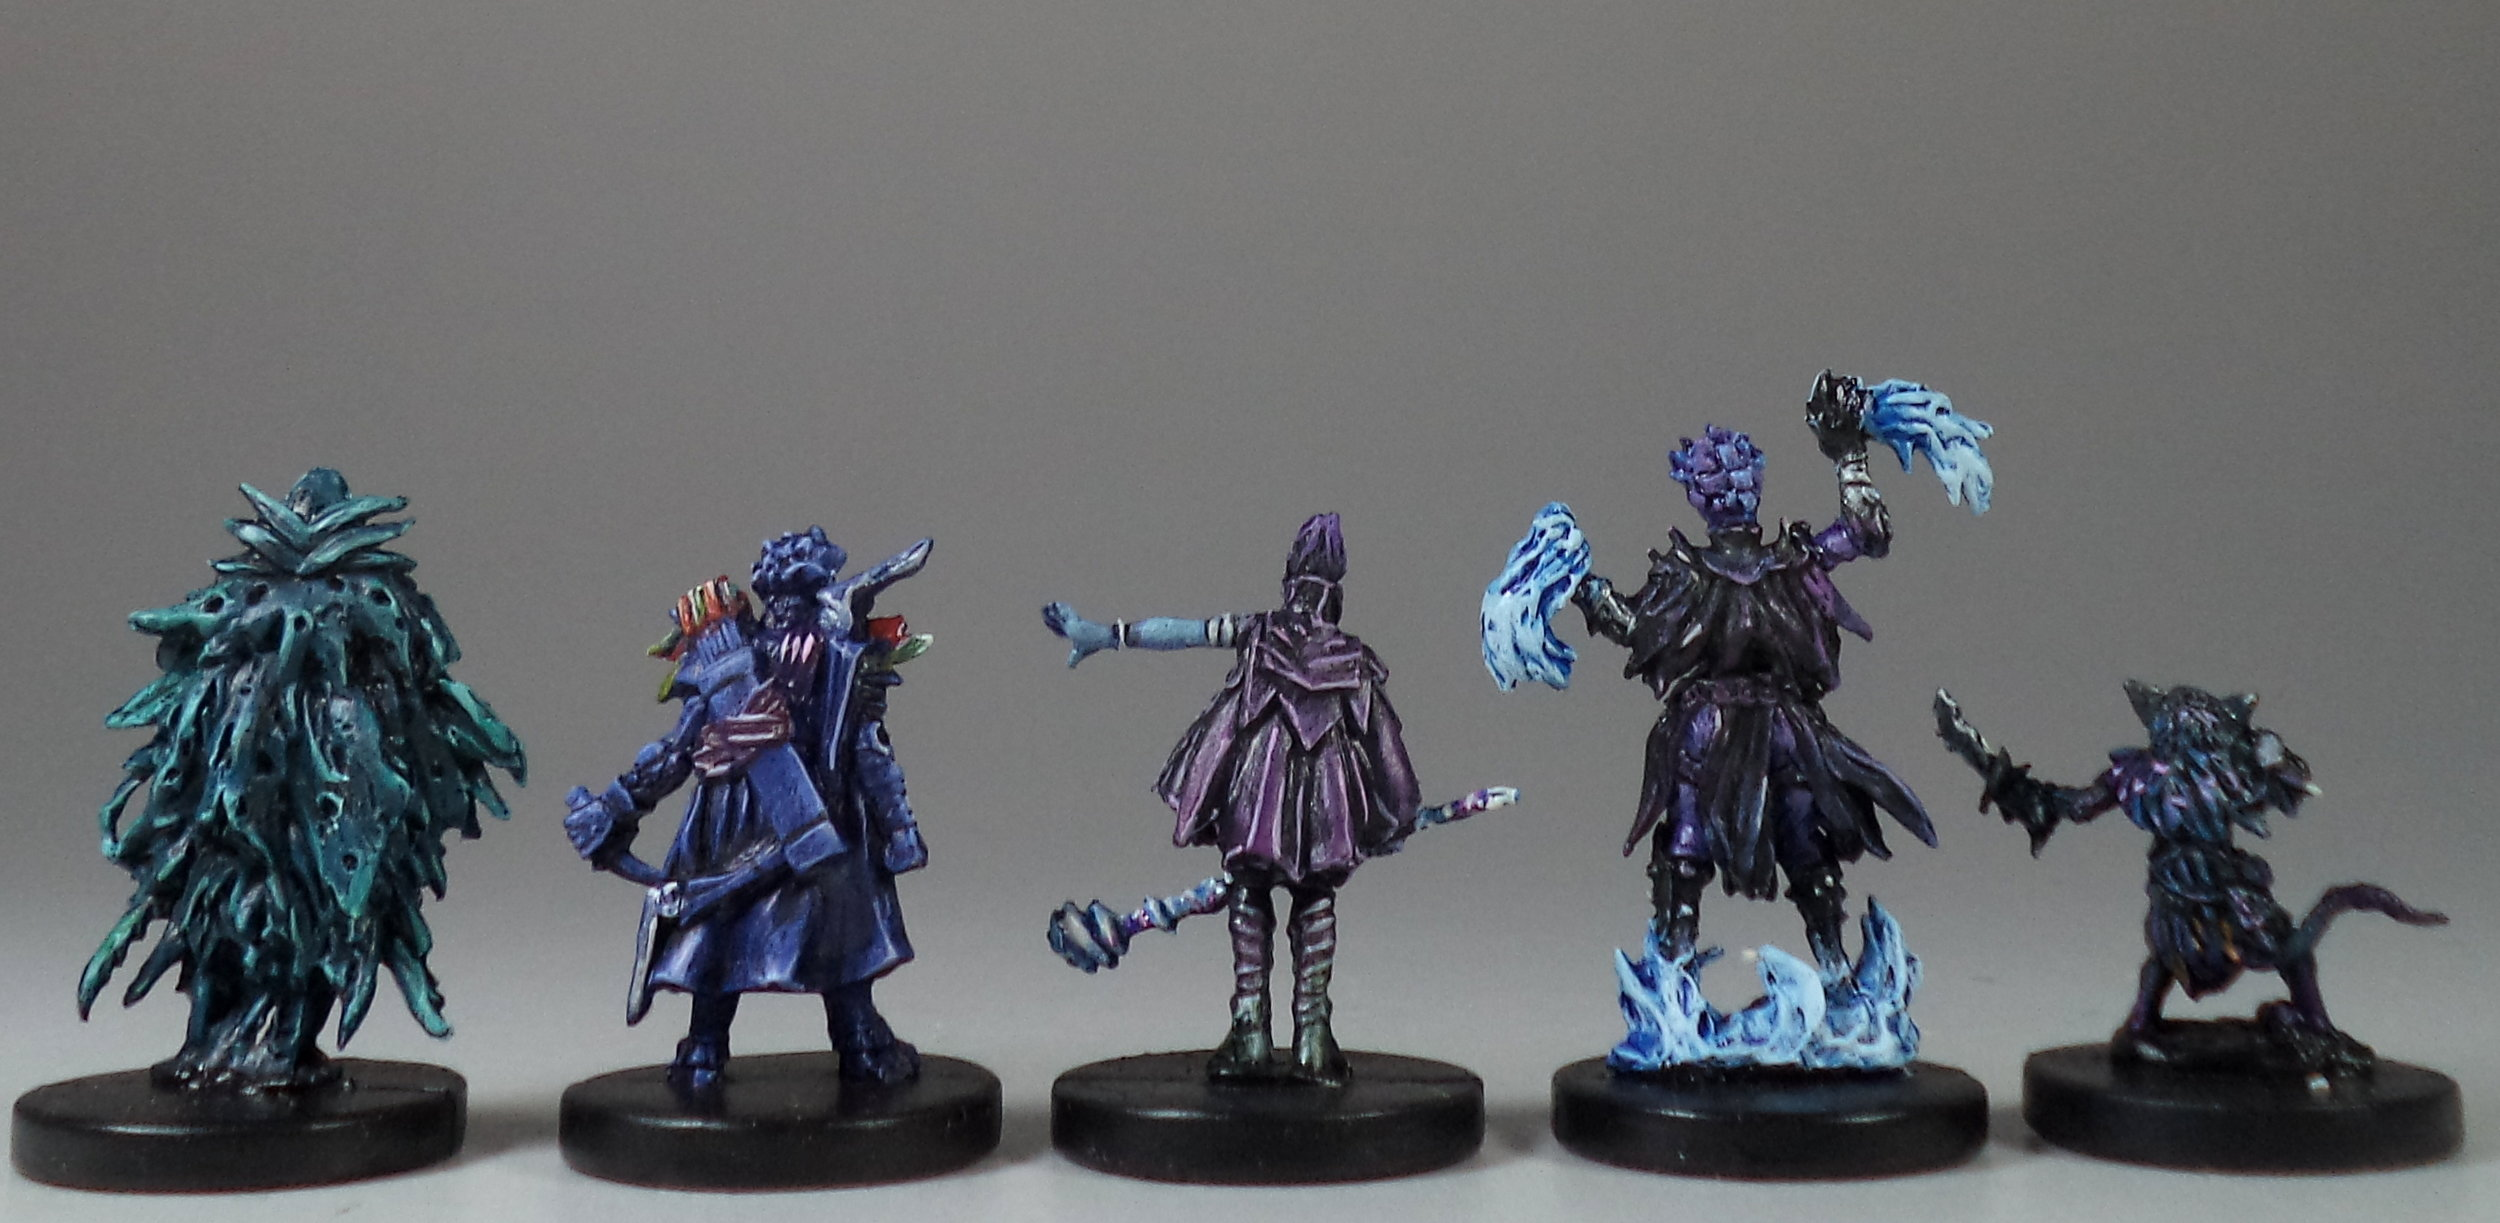 Gloomhaven Painted Gloomhaven Gloomhaven Miniature Painting (2).jpg